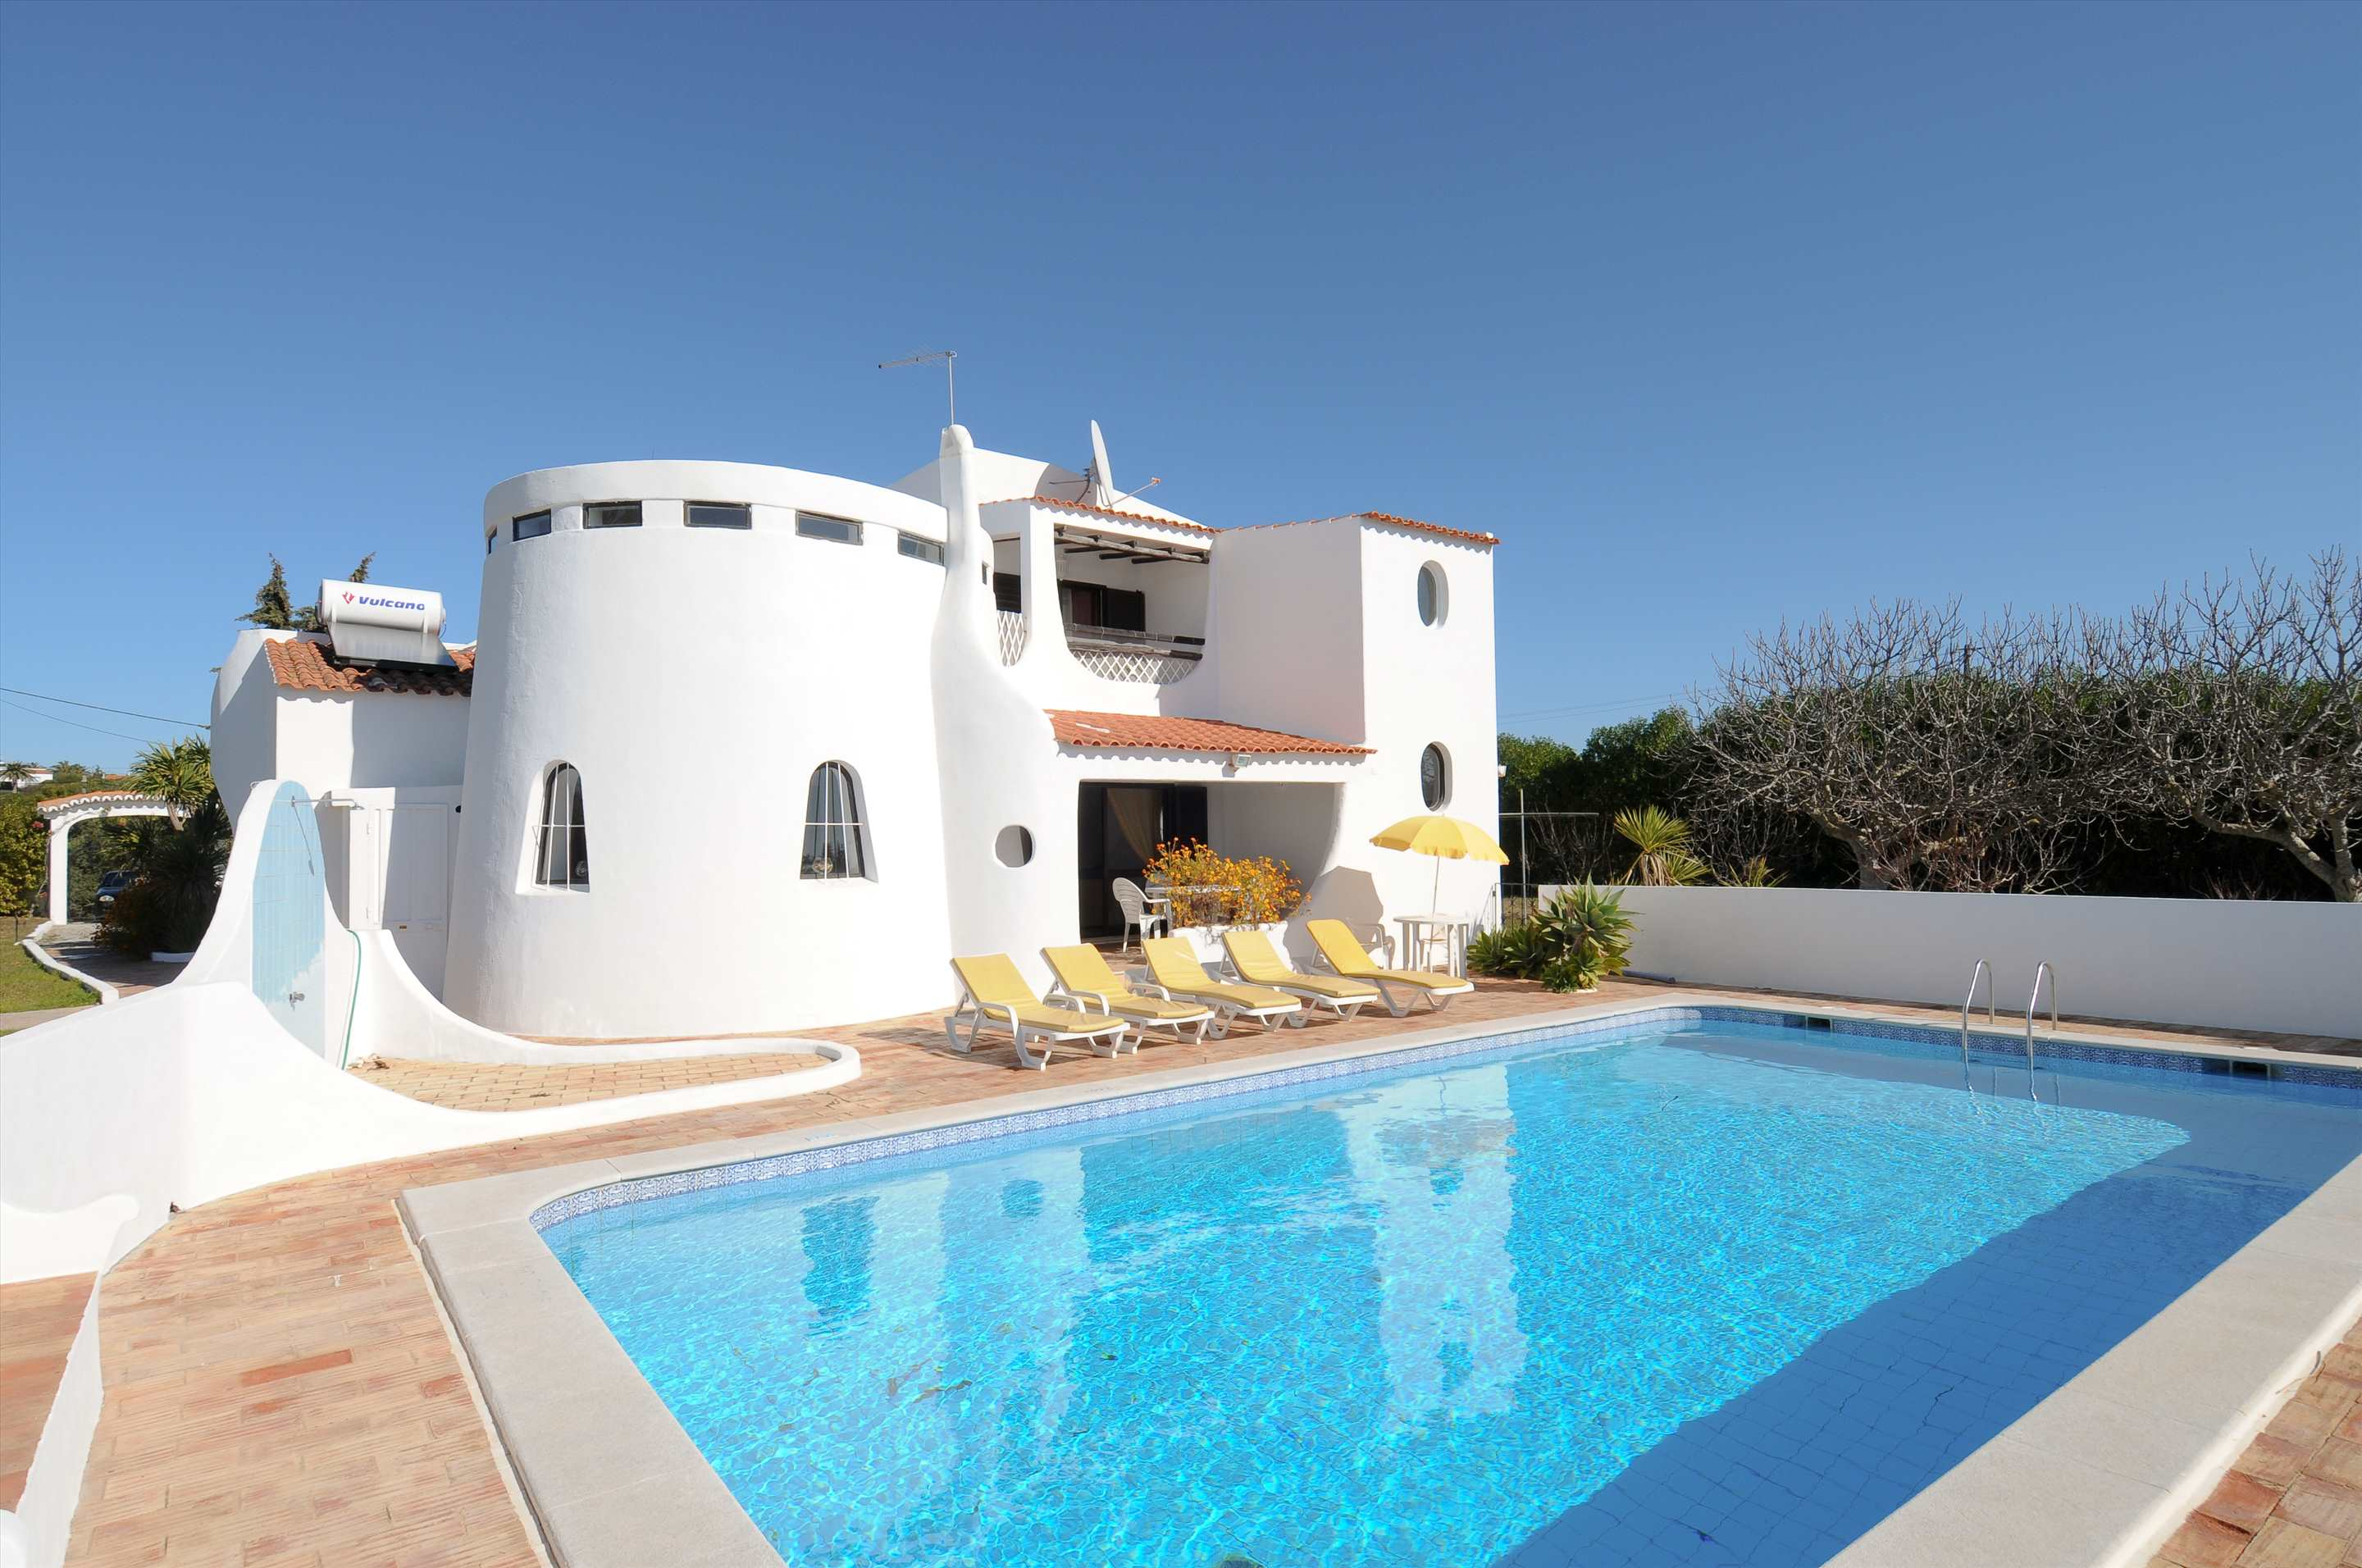 Casa Alexandra, 7-8 persons rate, 4 bedroom villa in Carvoeiro Area, Algarve Photo #14